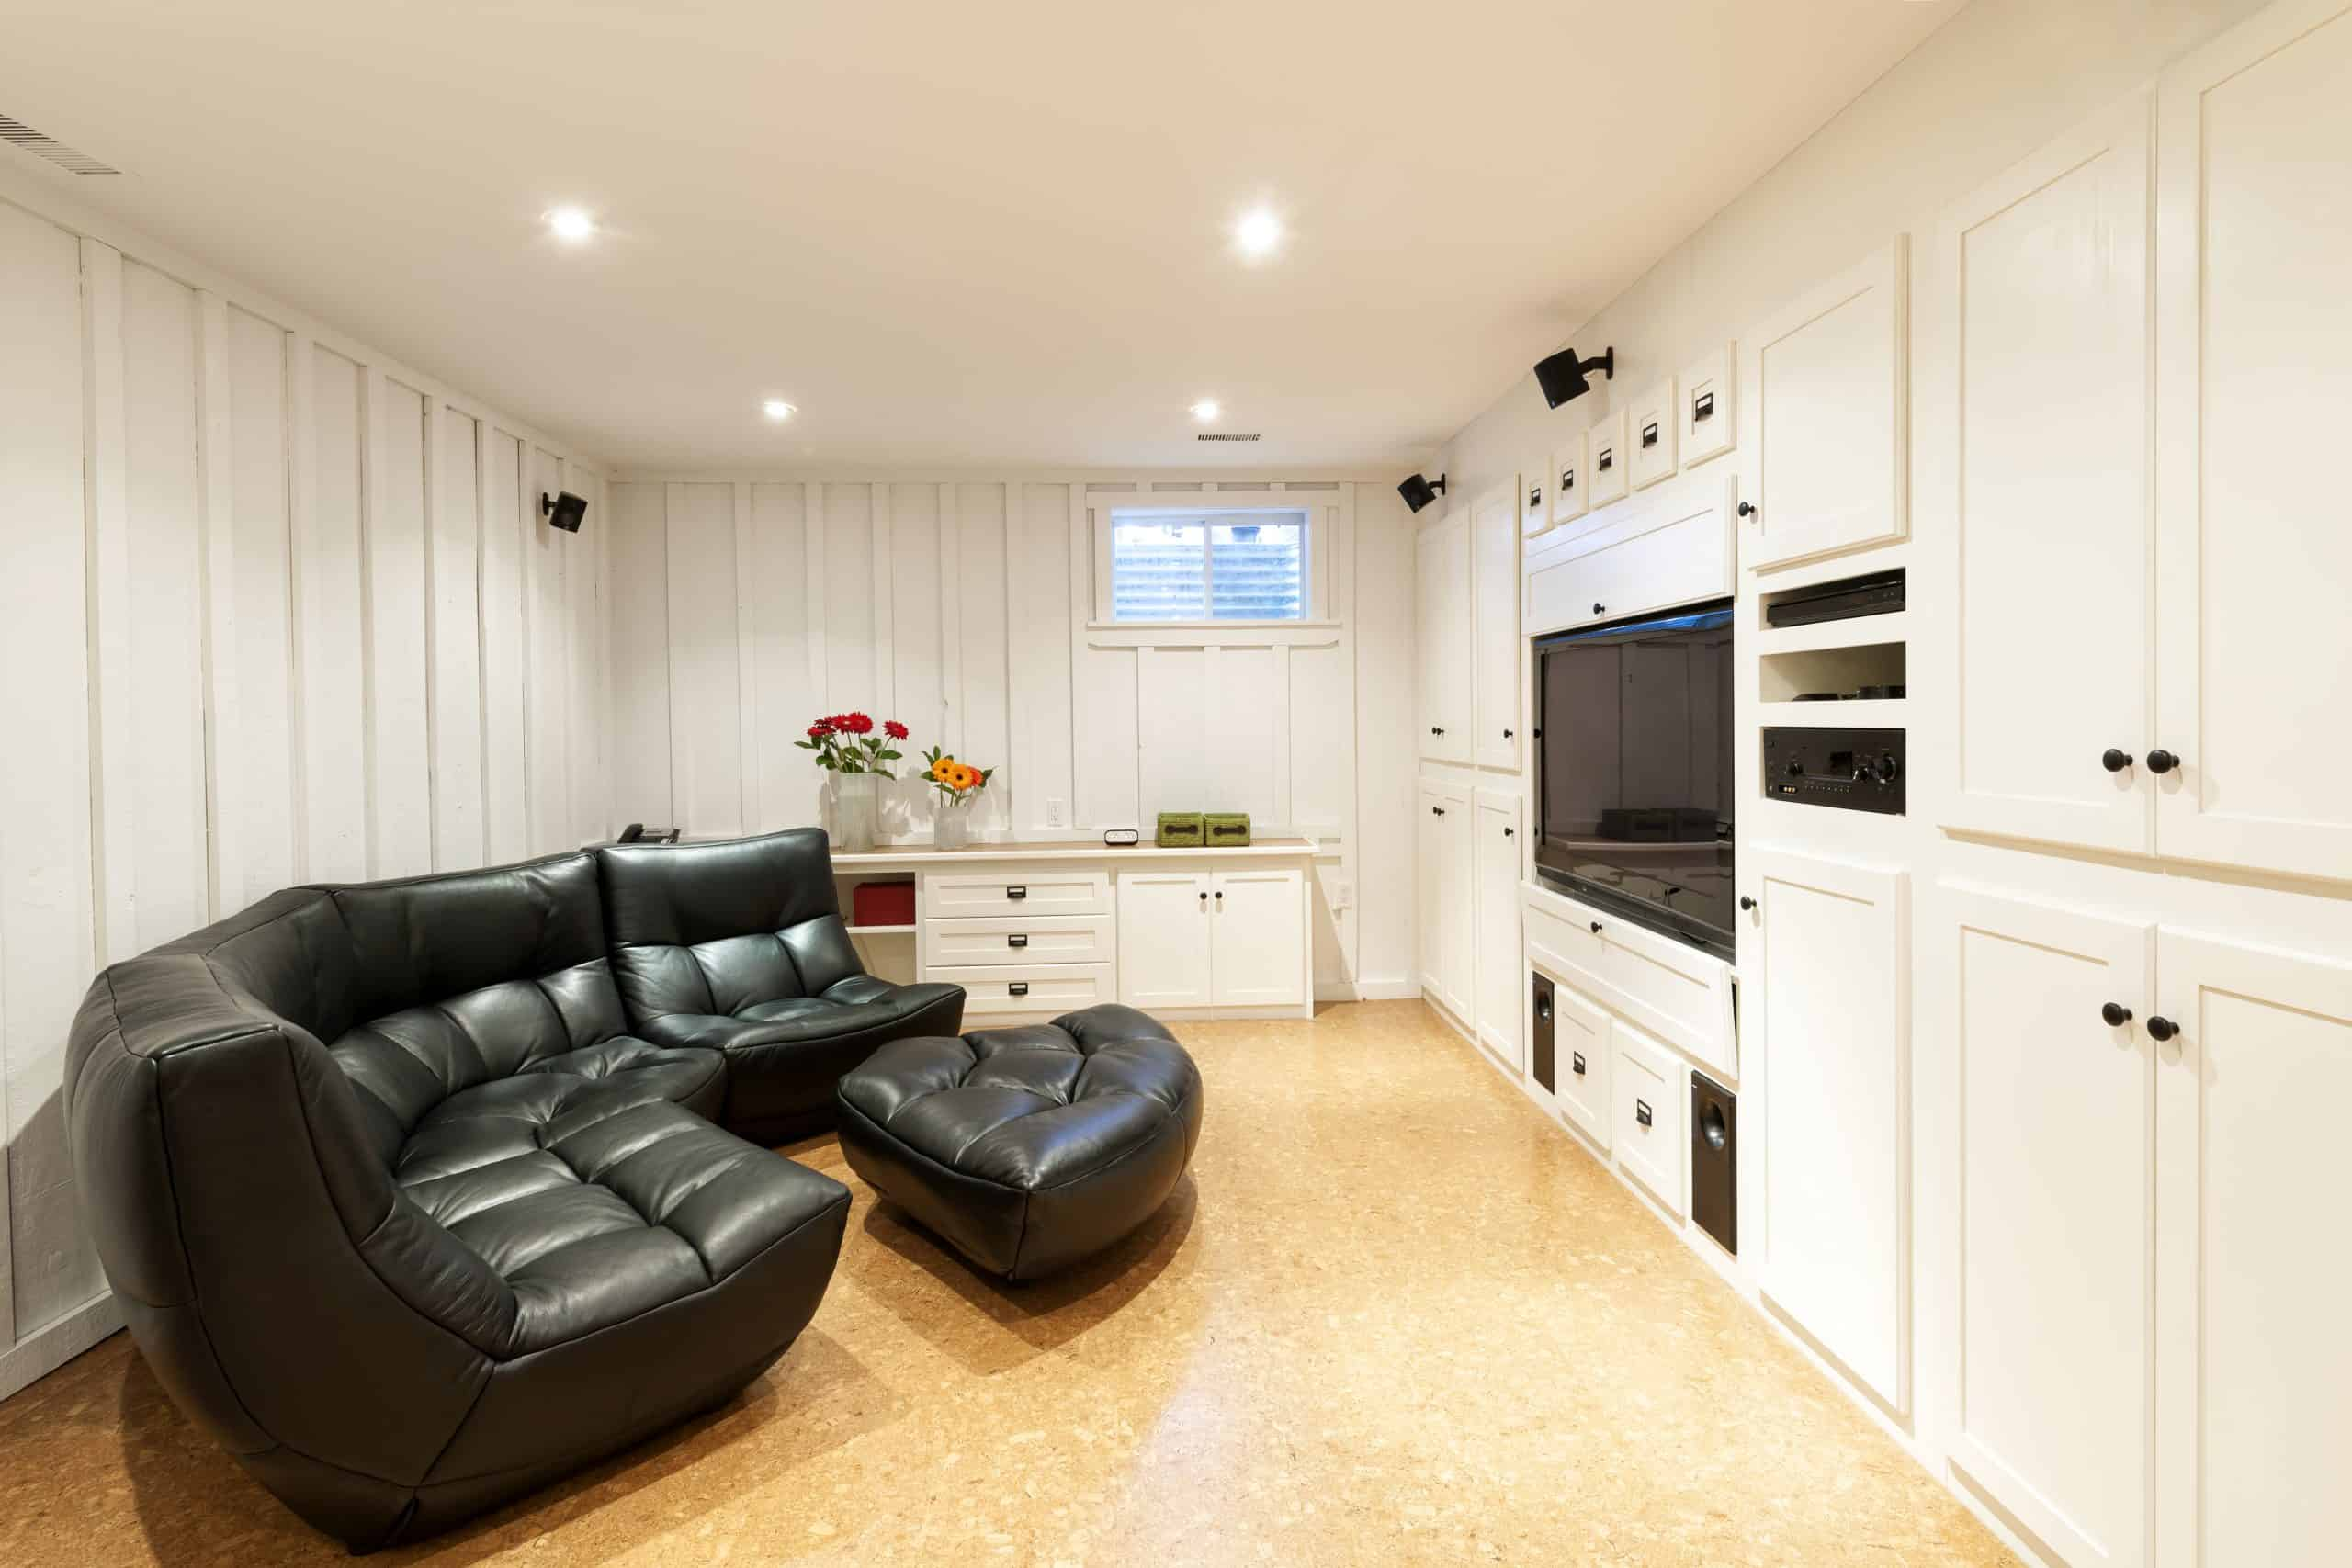 Home renovations that add value - finished basement with leather couch, flat-screen TV, and built-in cupboards